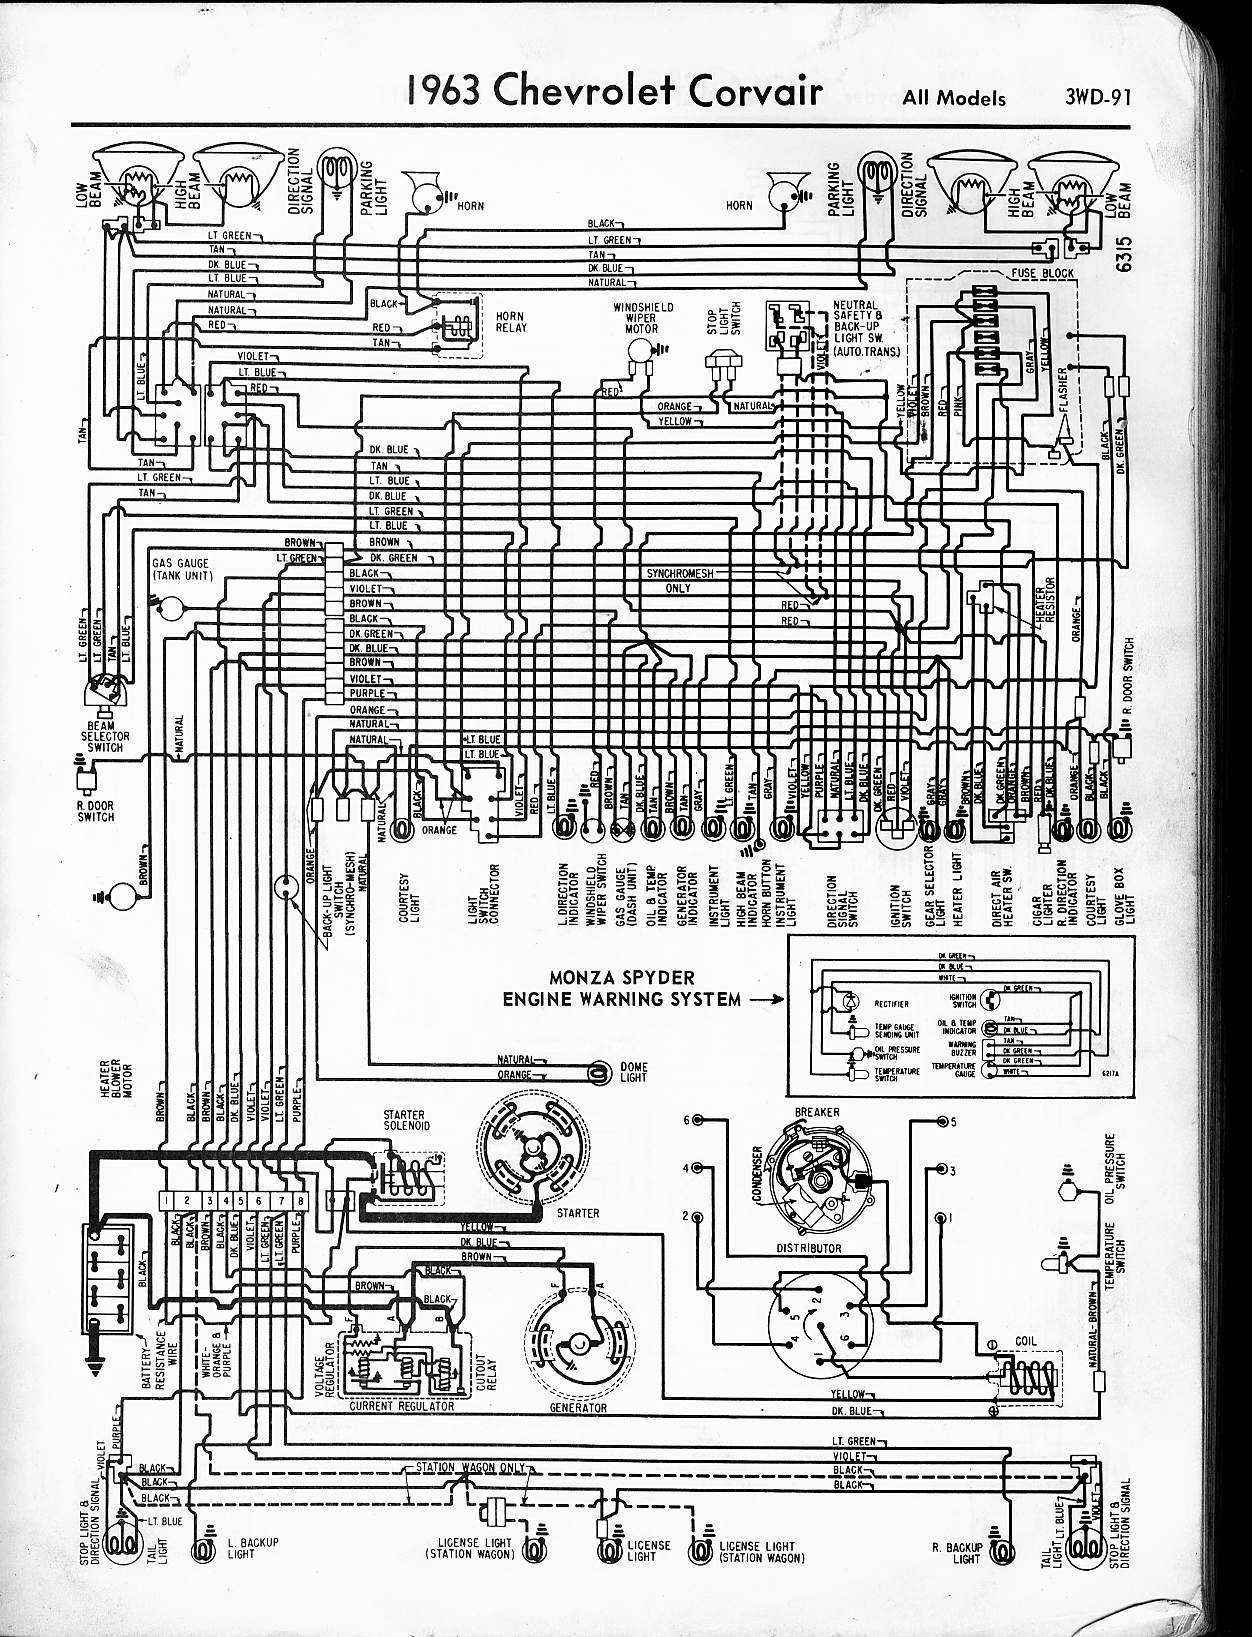 65 bel air wire diagram 55 chevy bel air wiring diagram